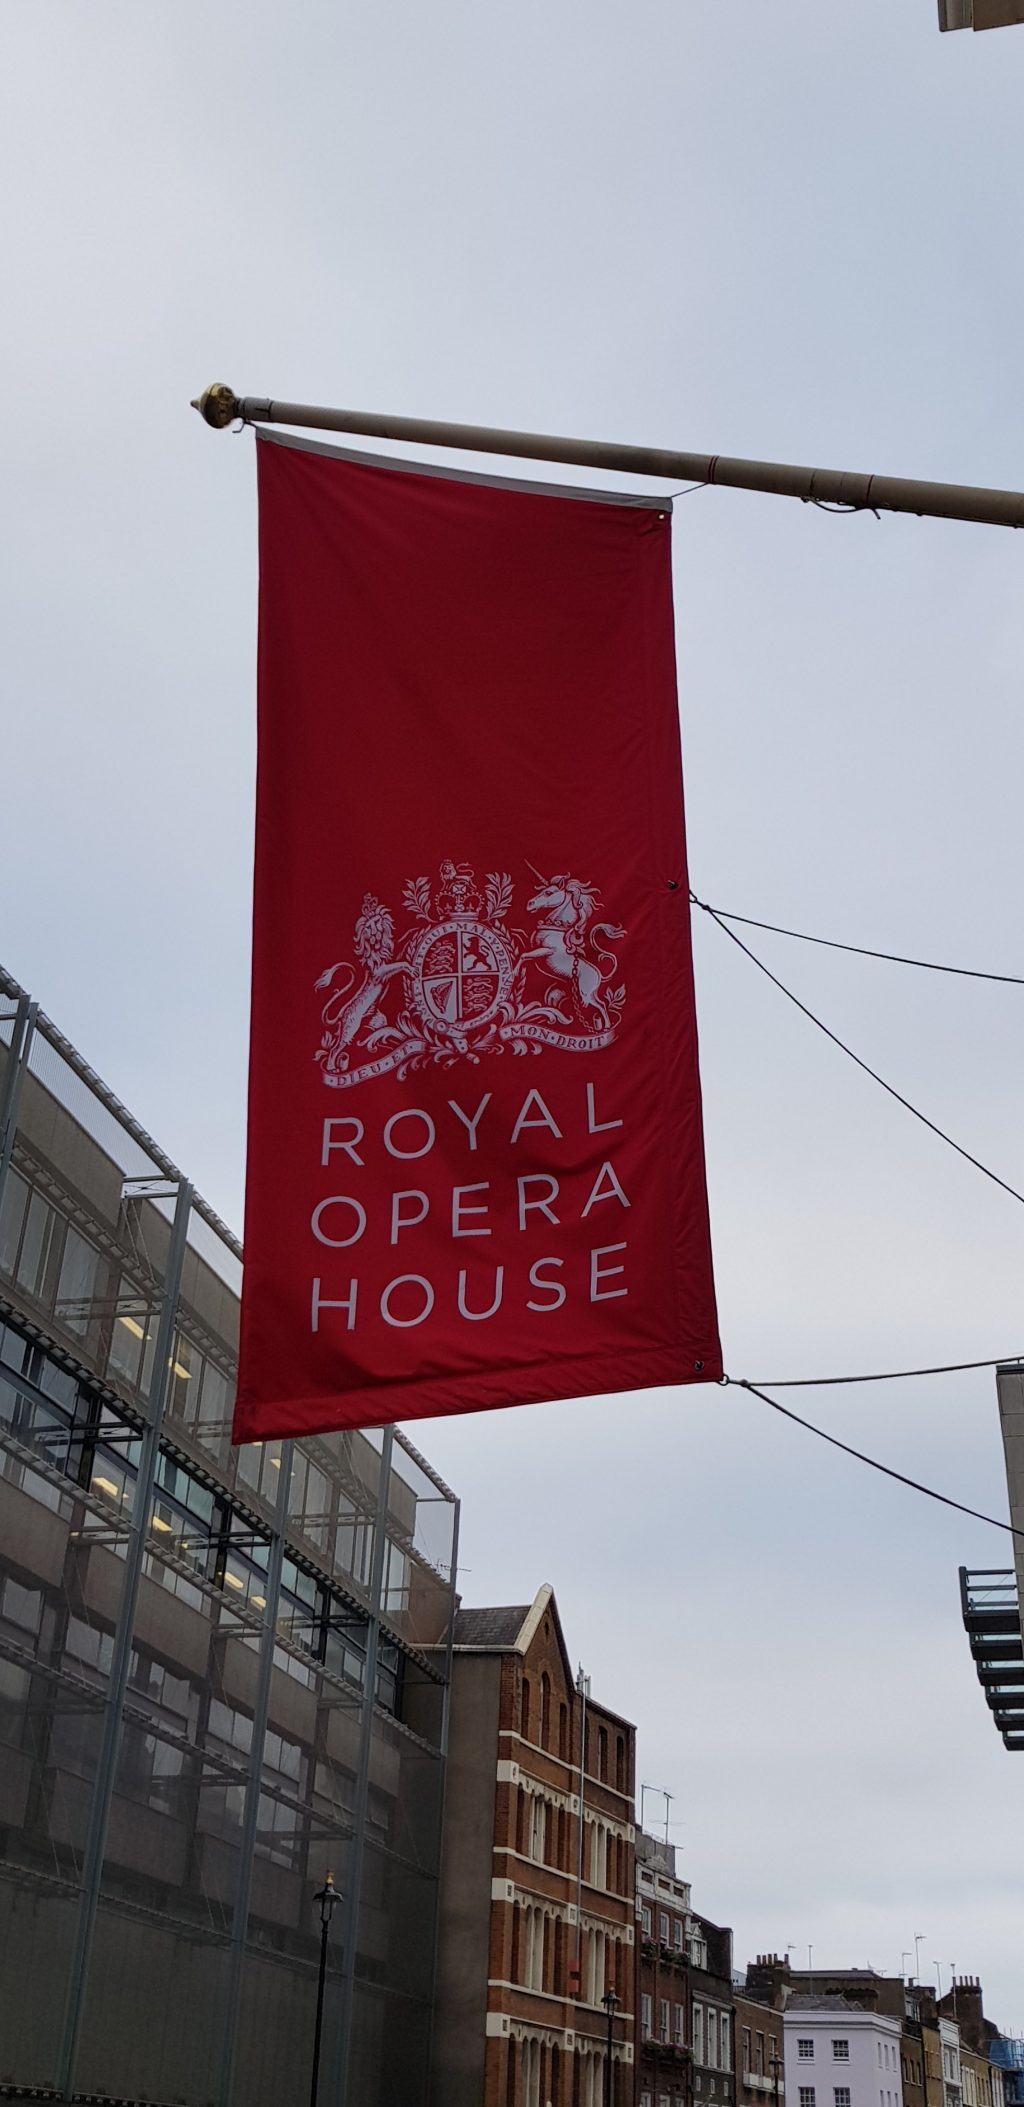 The flag of The Royal Opera House